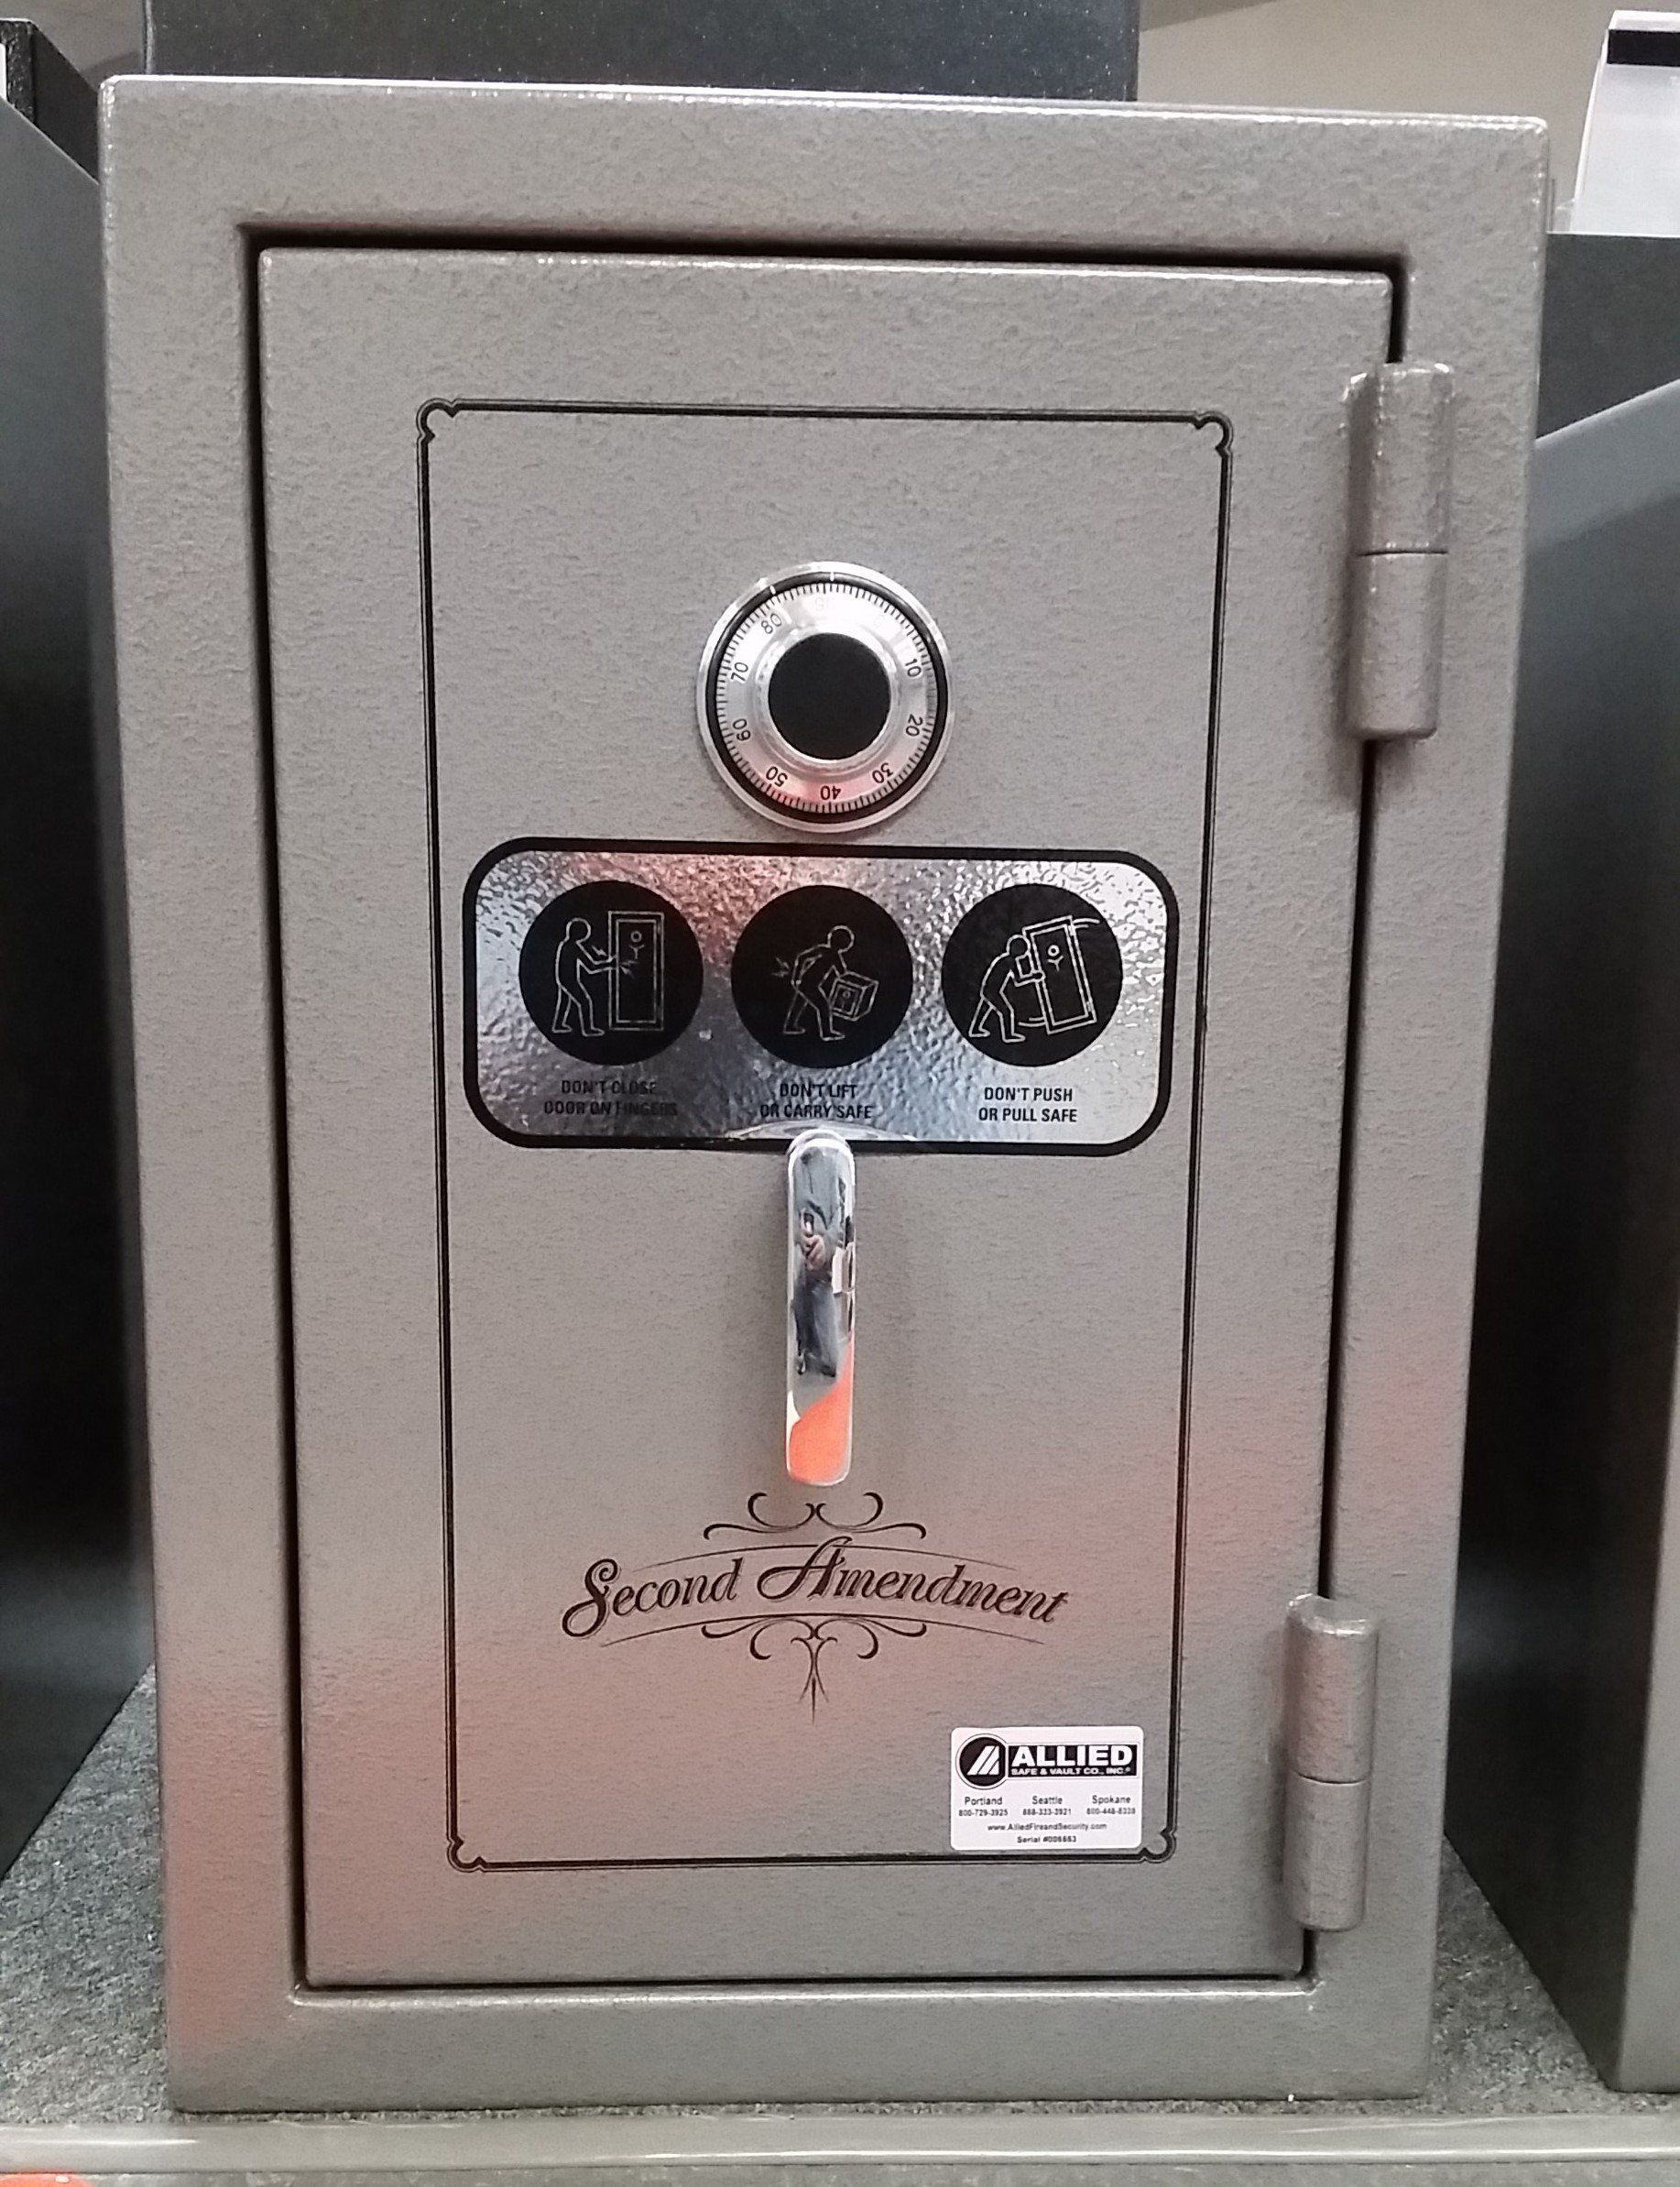 Handgun And Pistol Safes - SafeandVaultStore GS302020 Second Amendment Hand Gun Safe